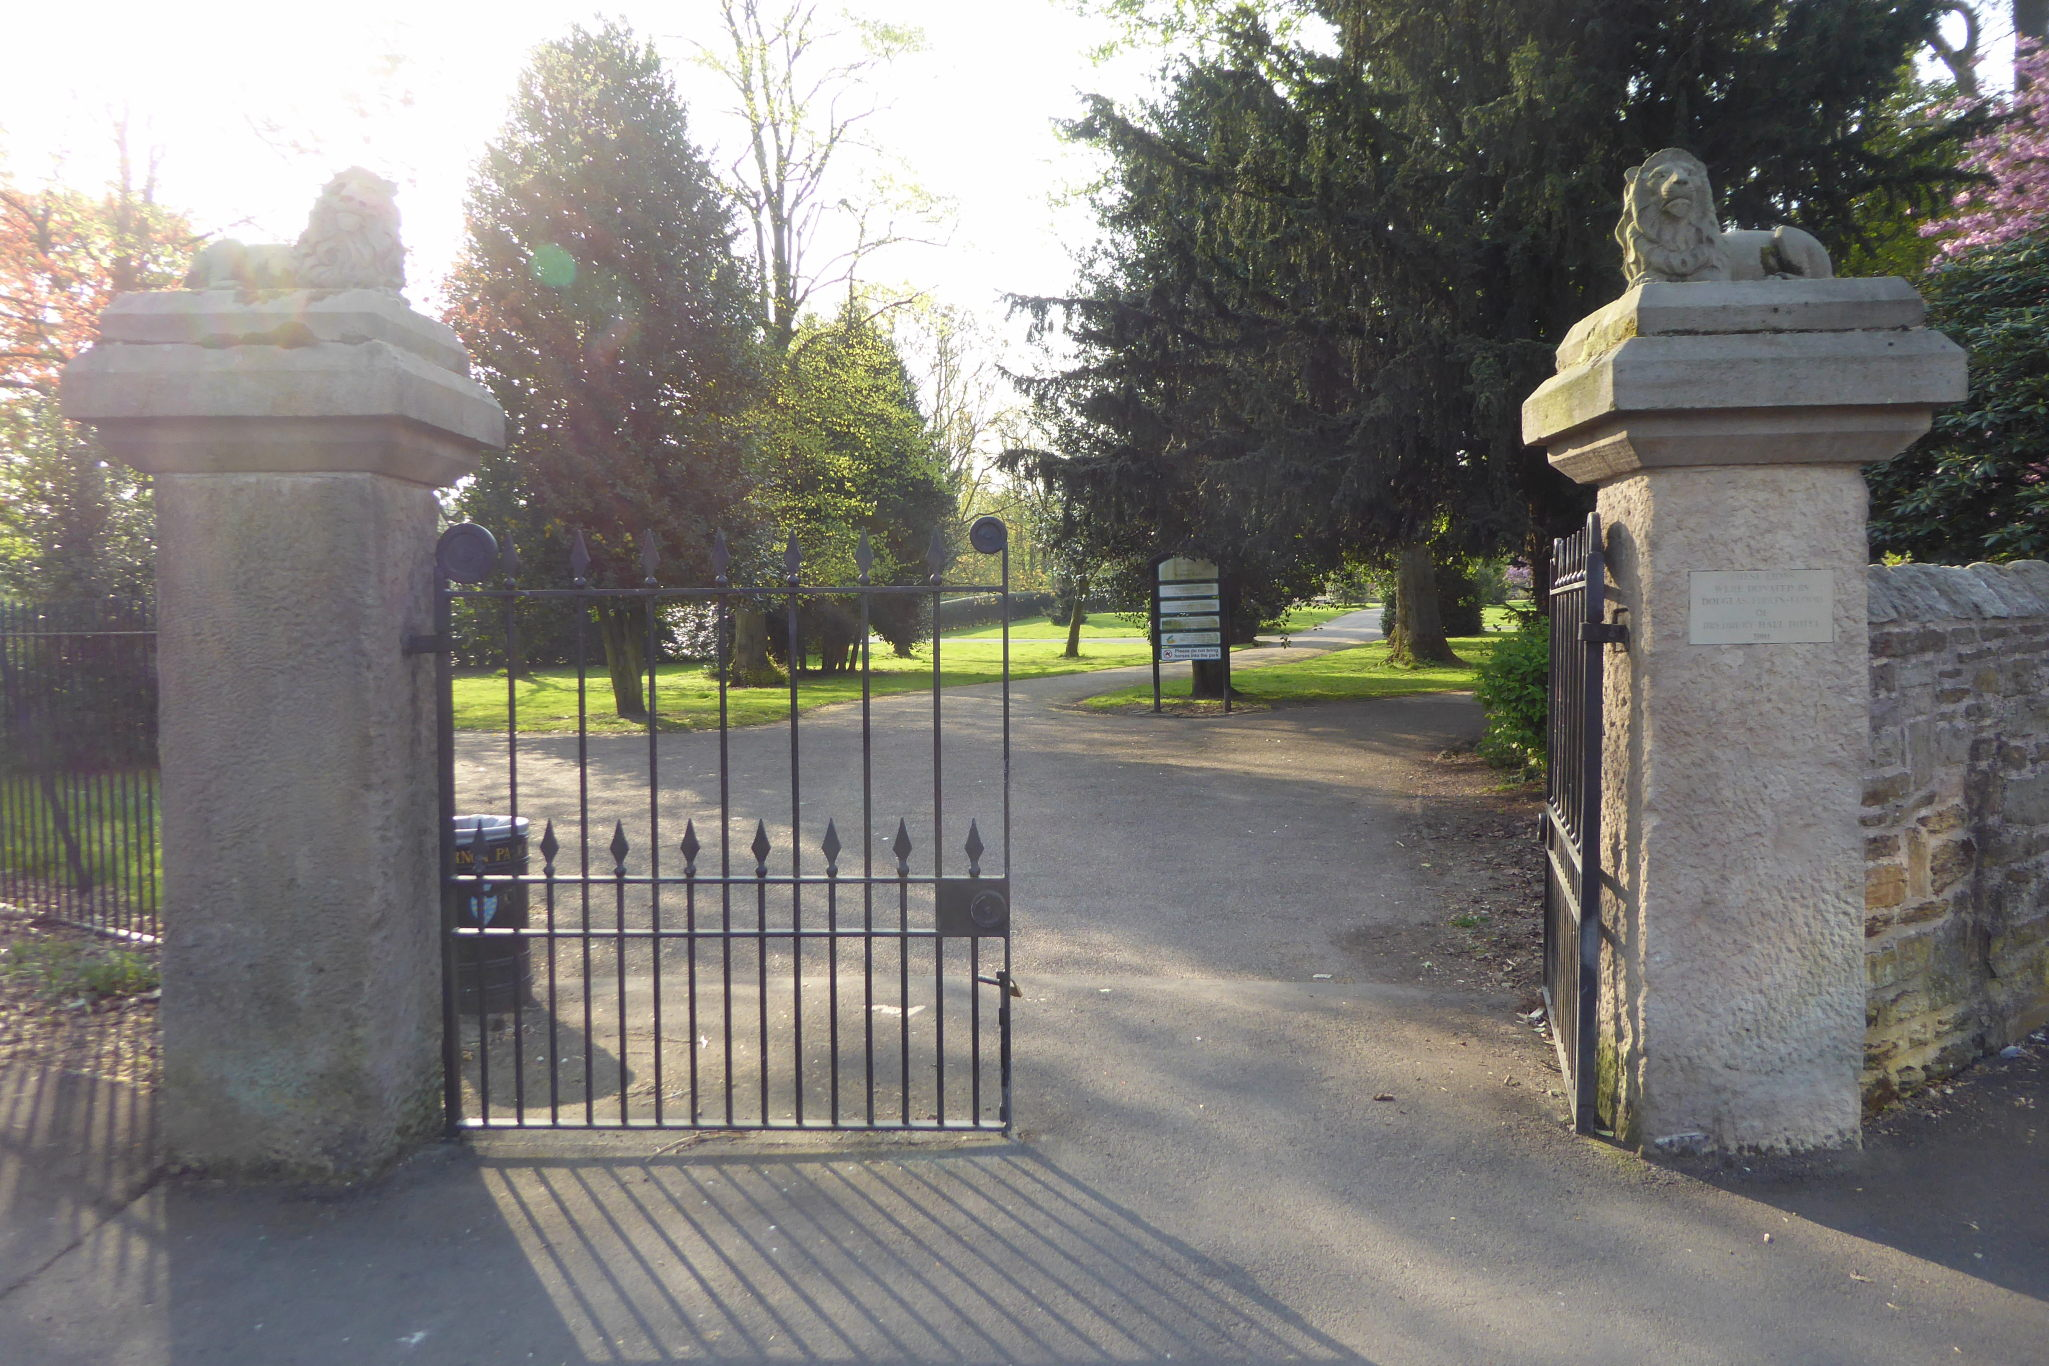 The entrance gates to Vernon Park